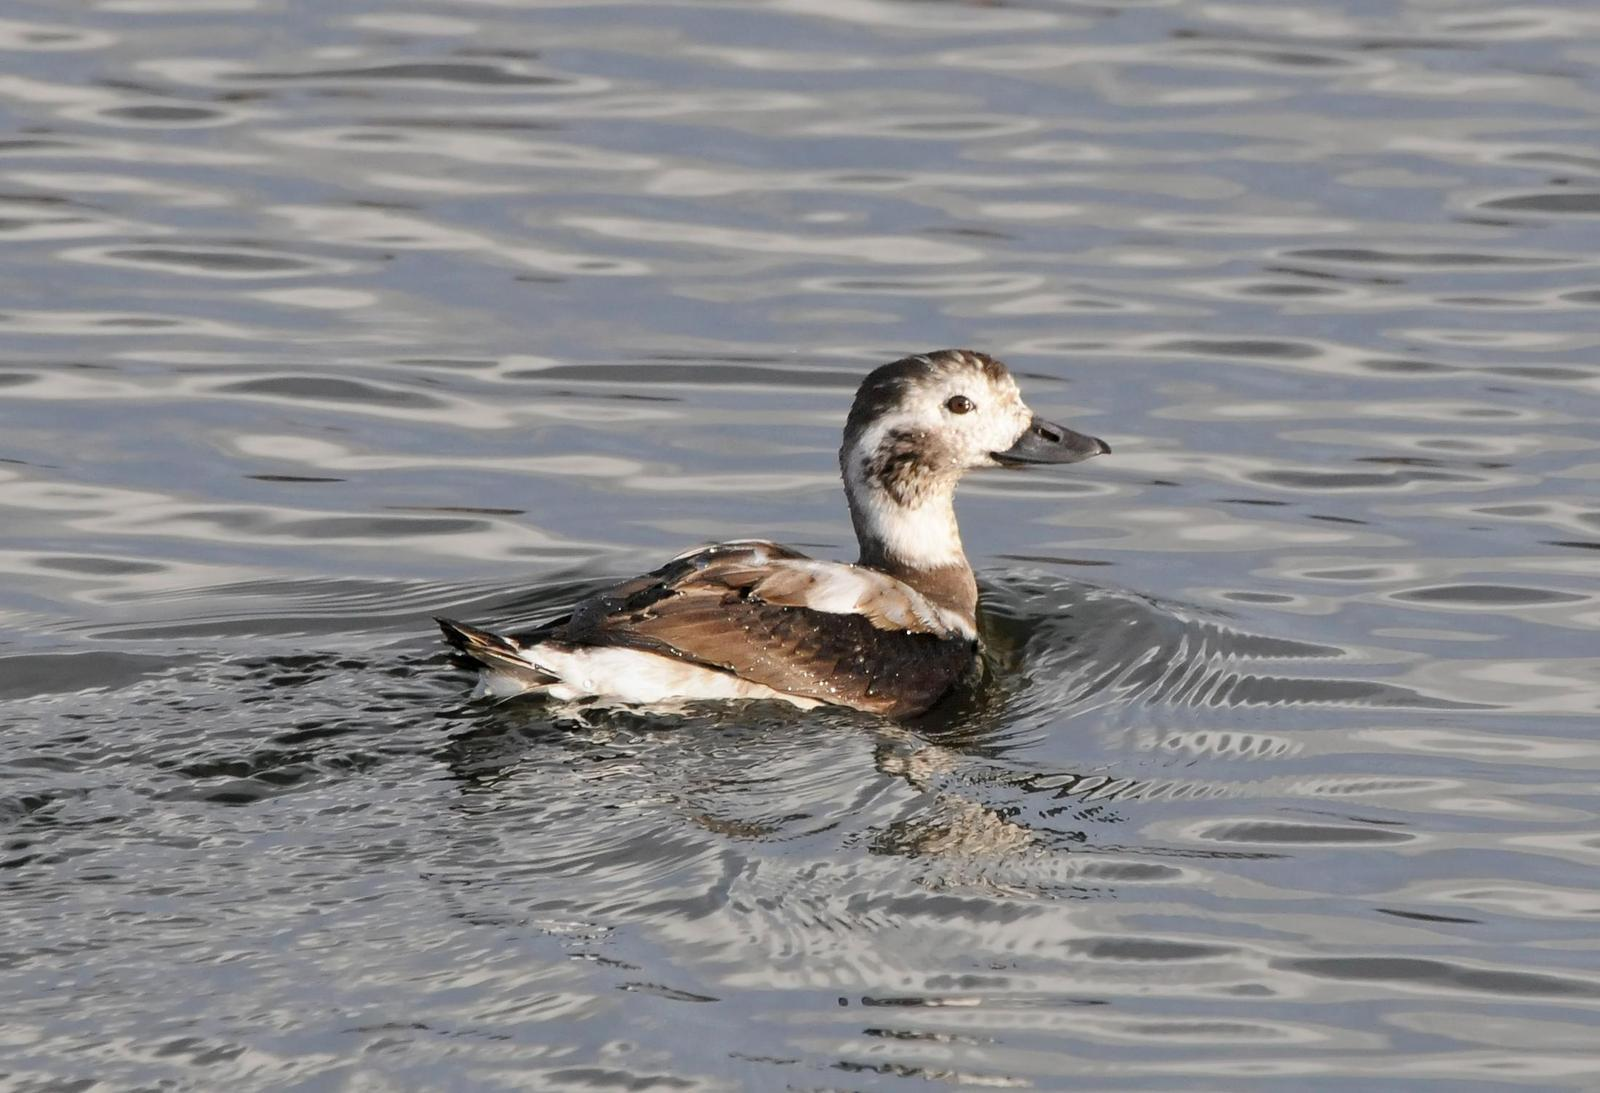 Long-tailed Duck Photo by Steven Mlodinow